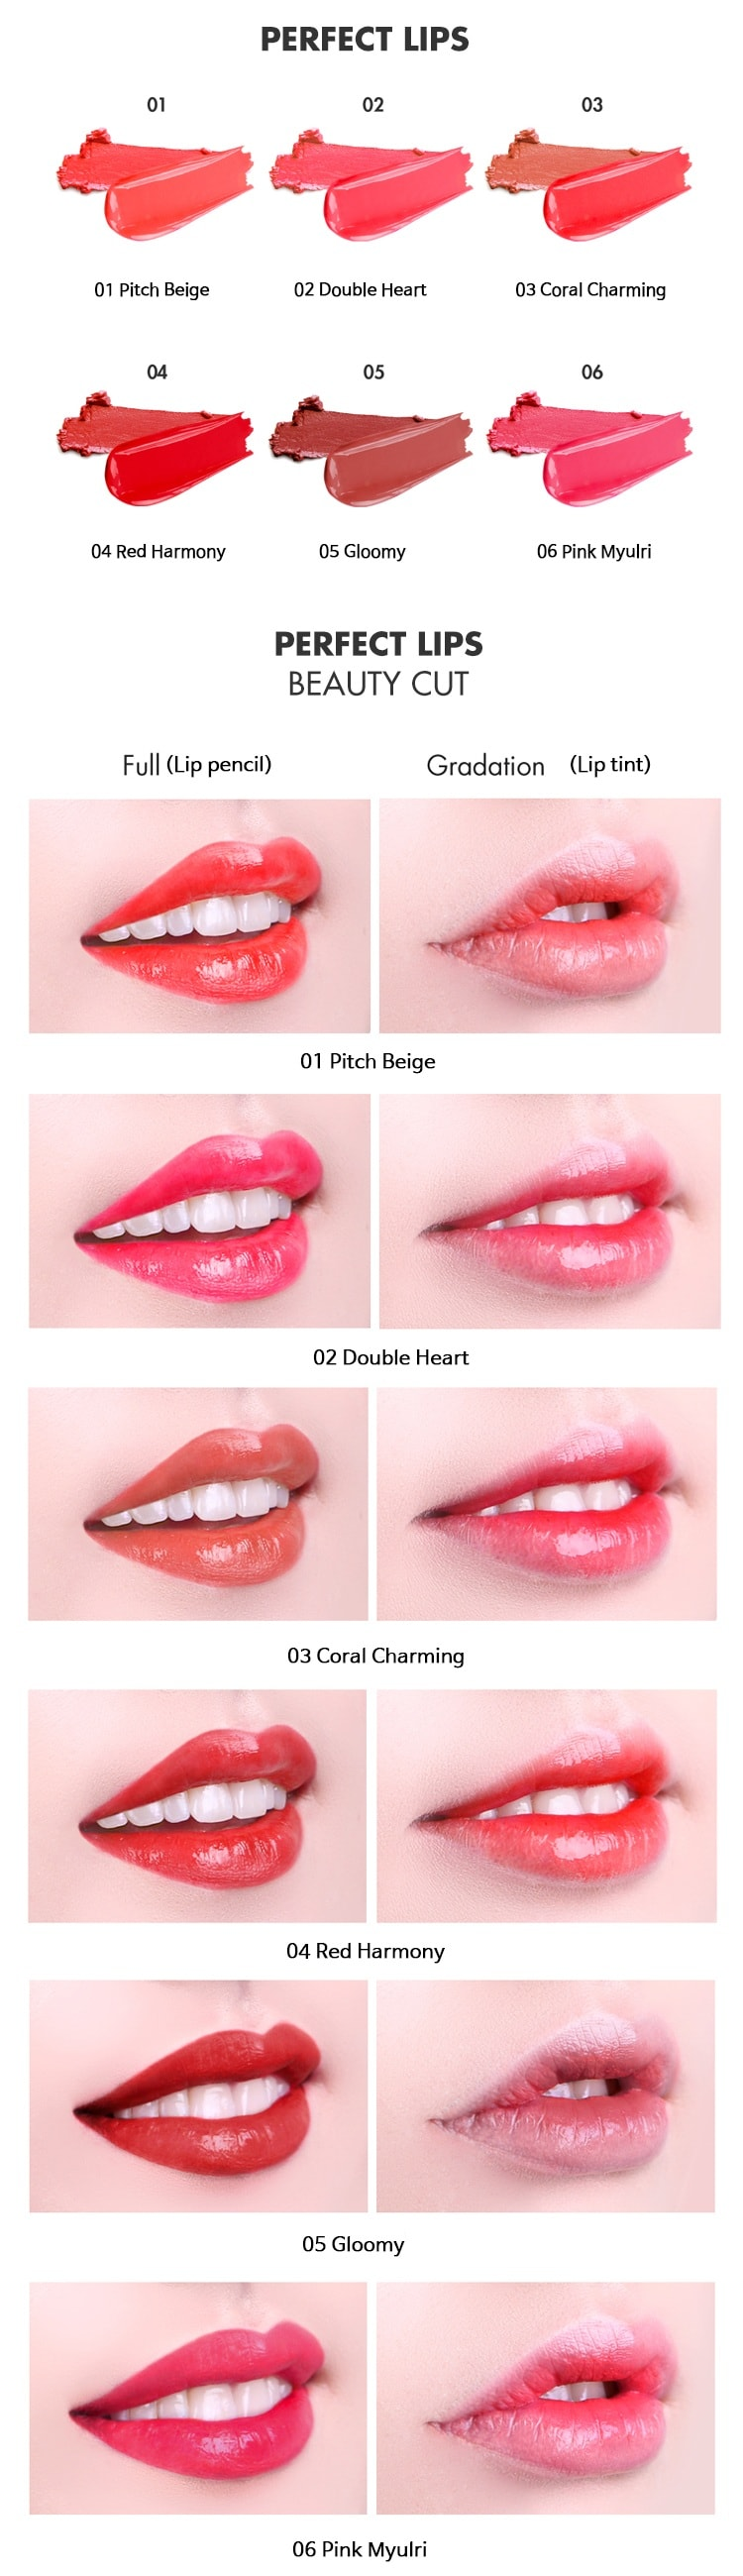 Tony Moly Perfect Lips Double Color Tint [4 Red Harmony]